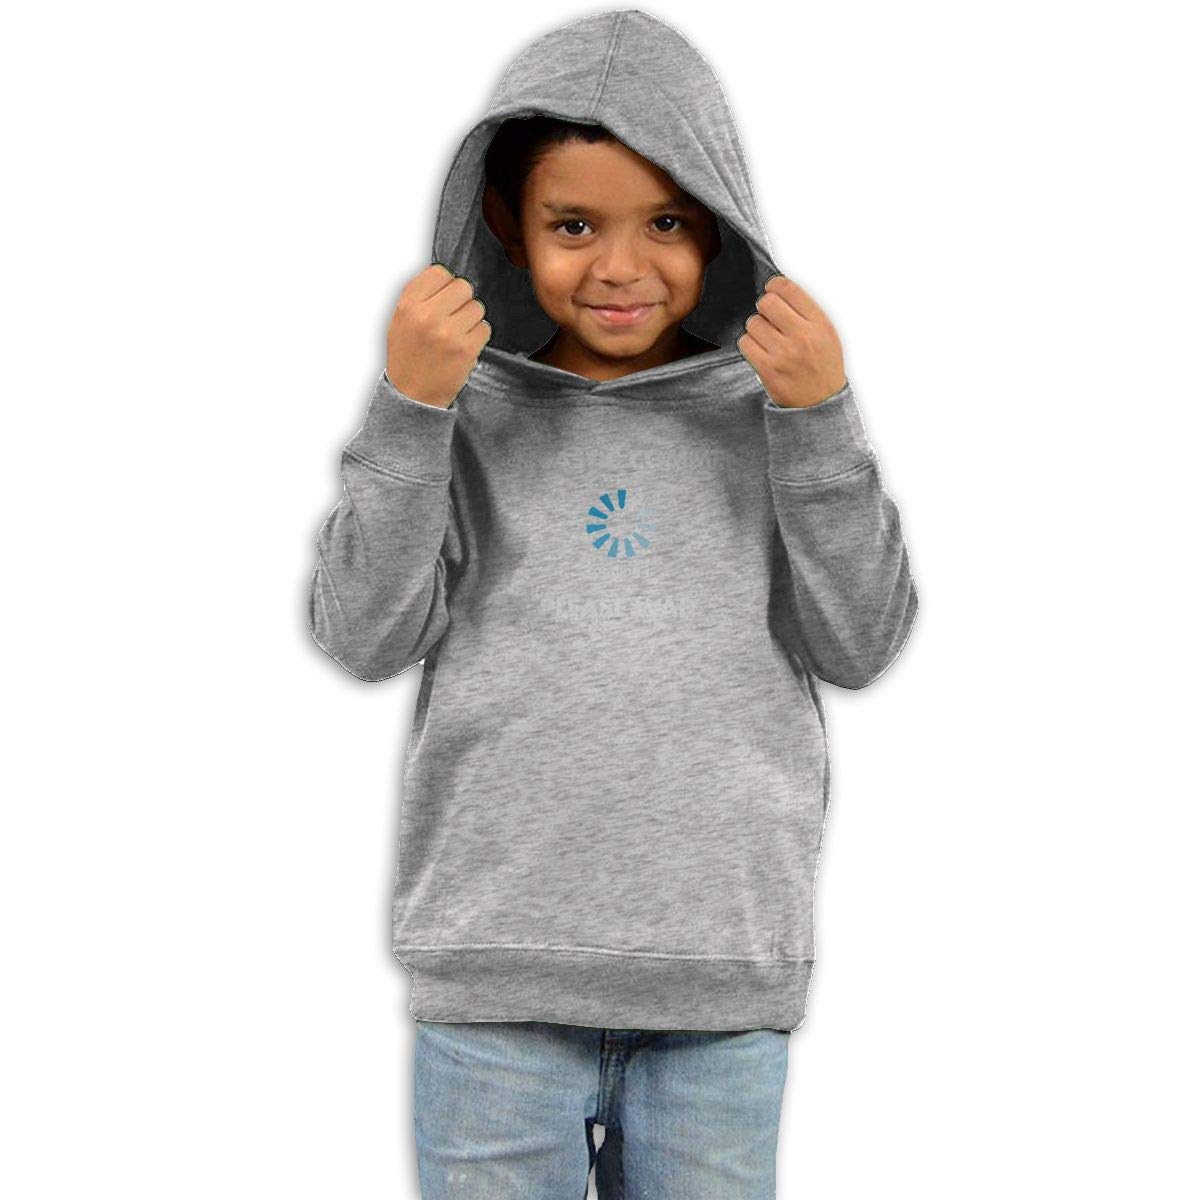 GUOZX Childrens Hooded Sweater Sarcastic Comment Loading Please Wait1 Children Sweater Black